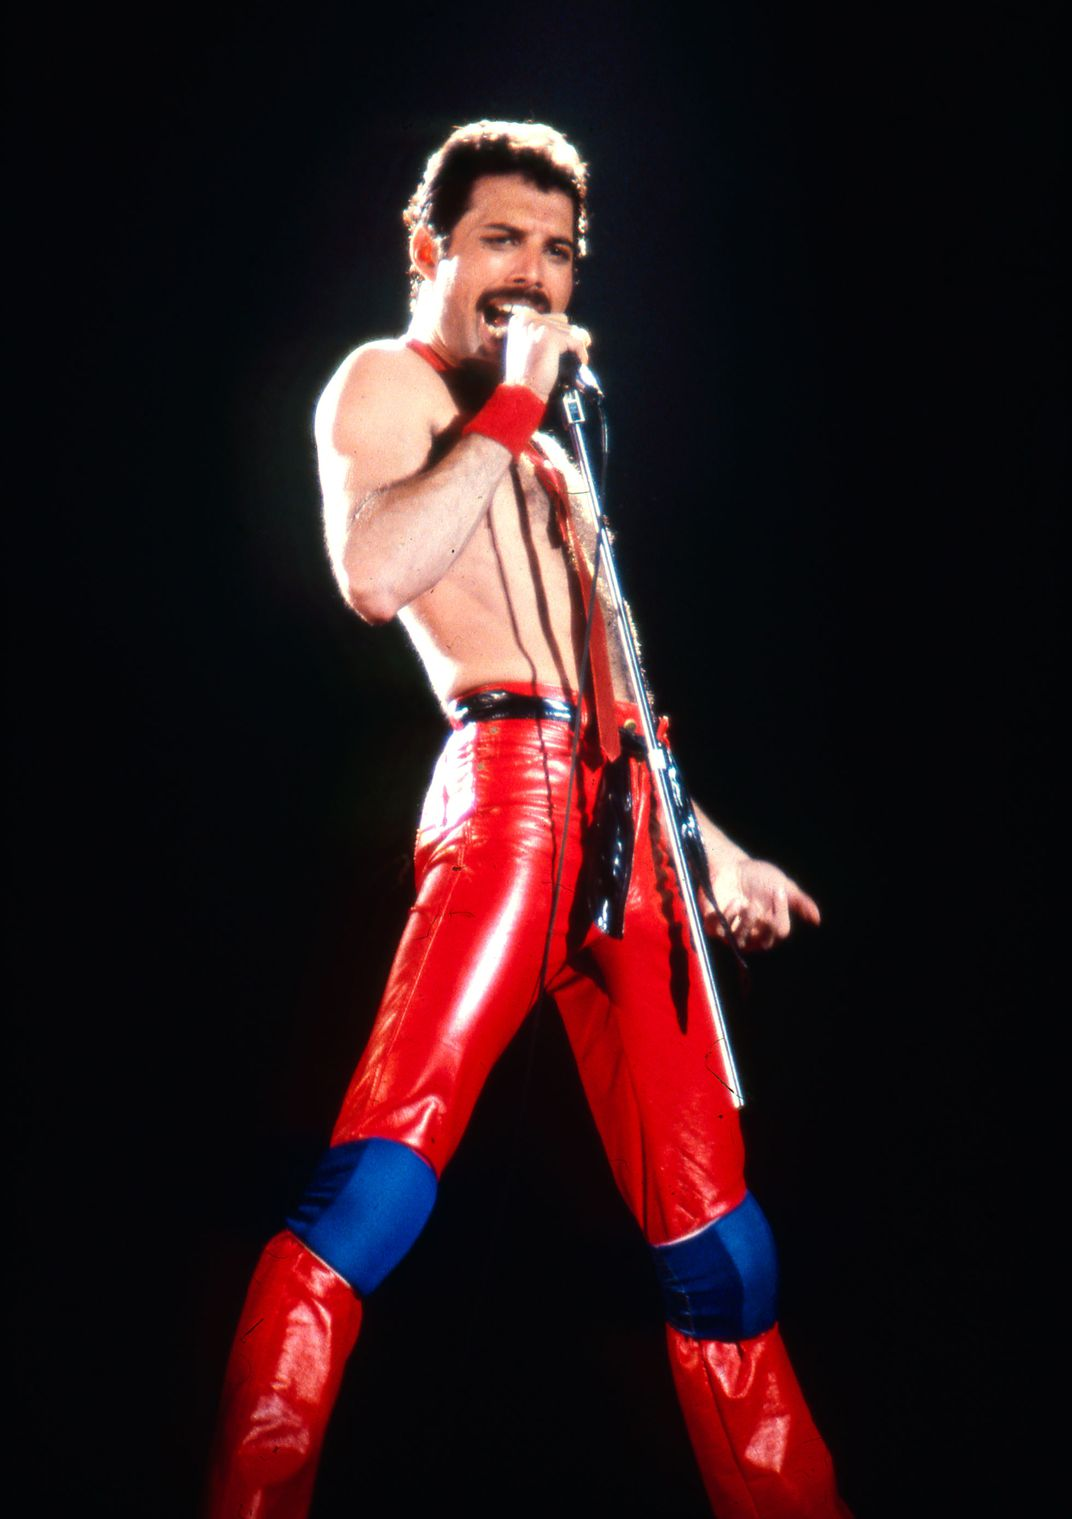 photos of freddie mercury and the true bohemi arts culture smithsonian magazine photos of freddie mercury and the true